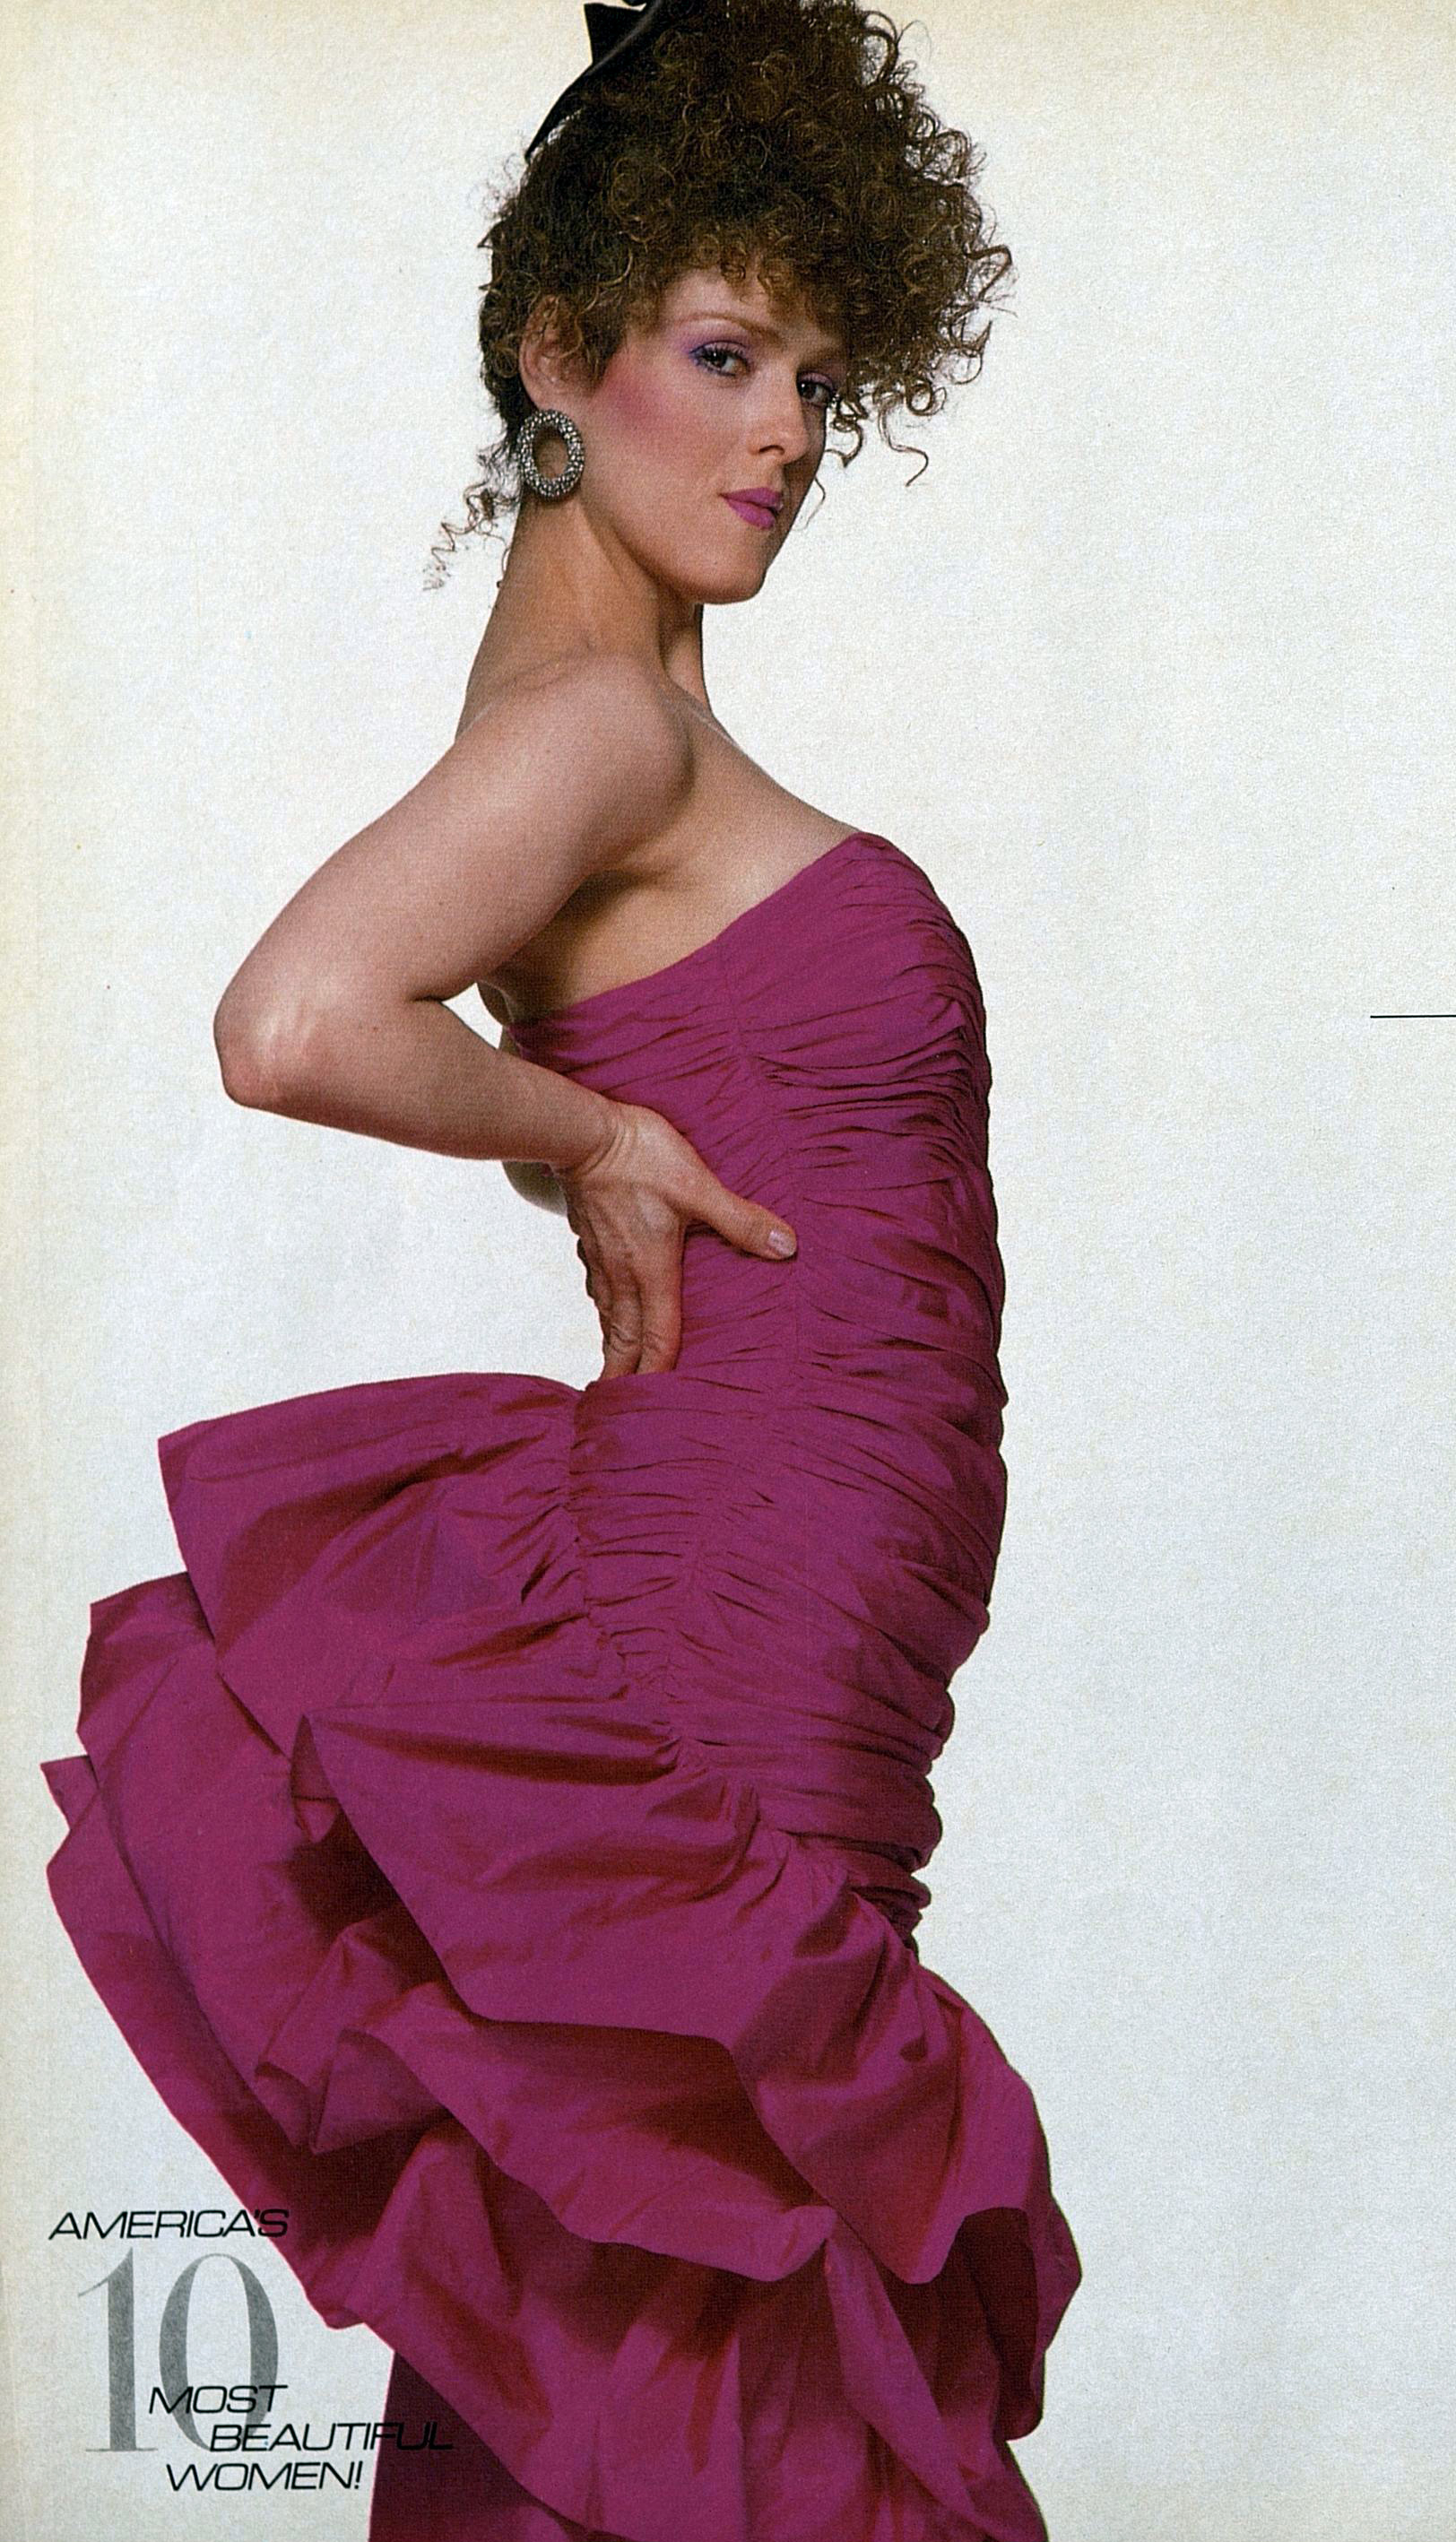 Bernadette Peter's in a bustled and ruffled version; photo by Francesco Scavullo for Harper's Bazaar, September 1984.